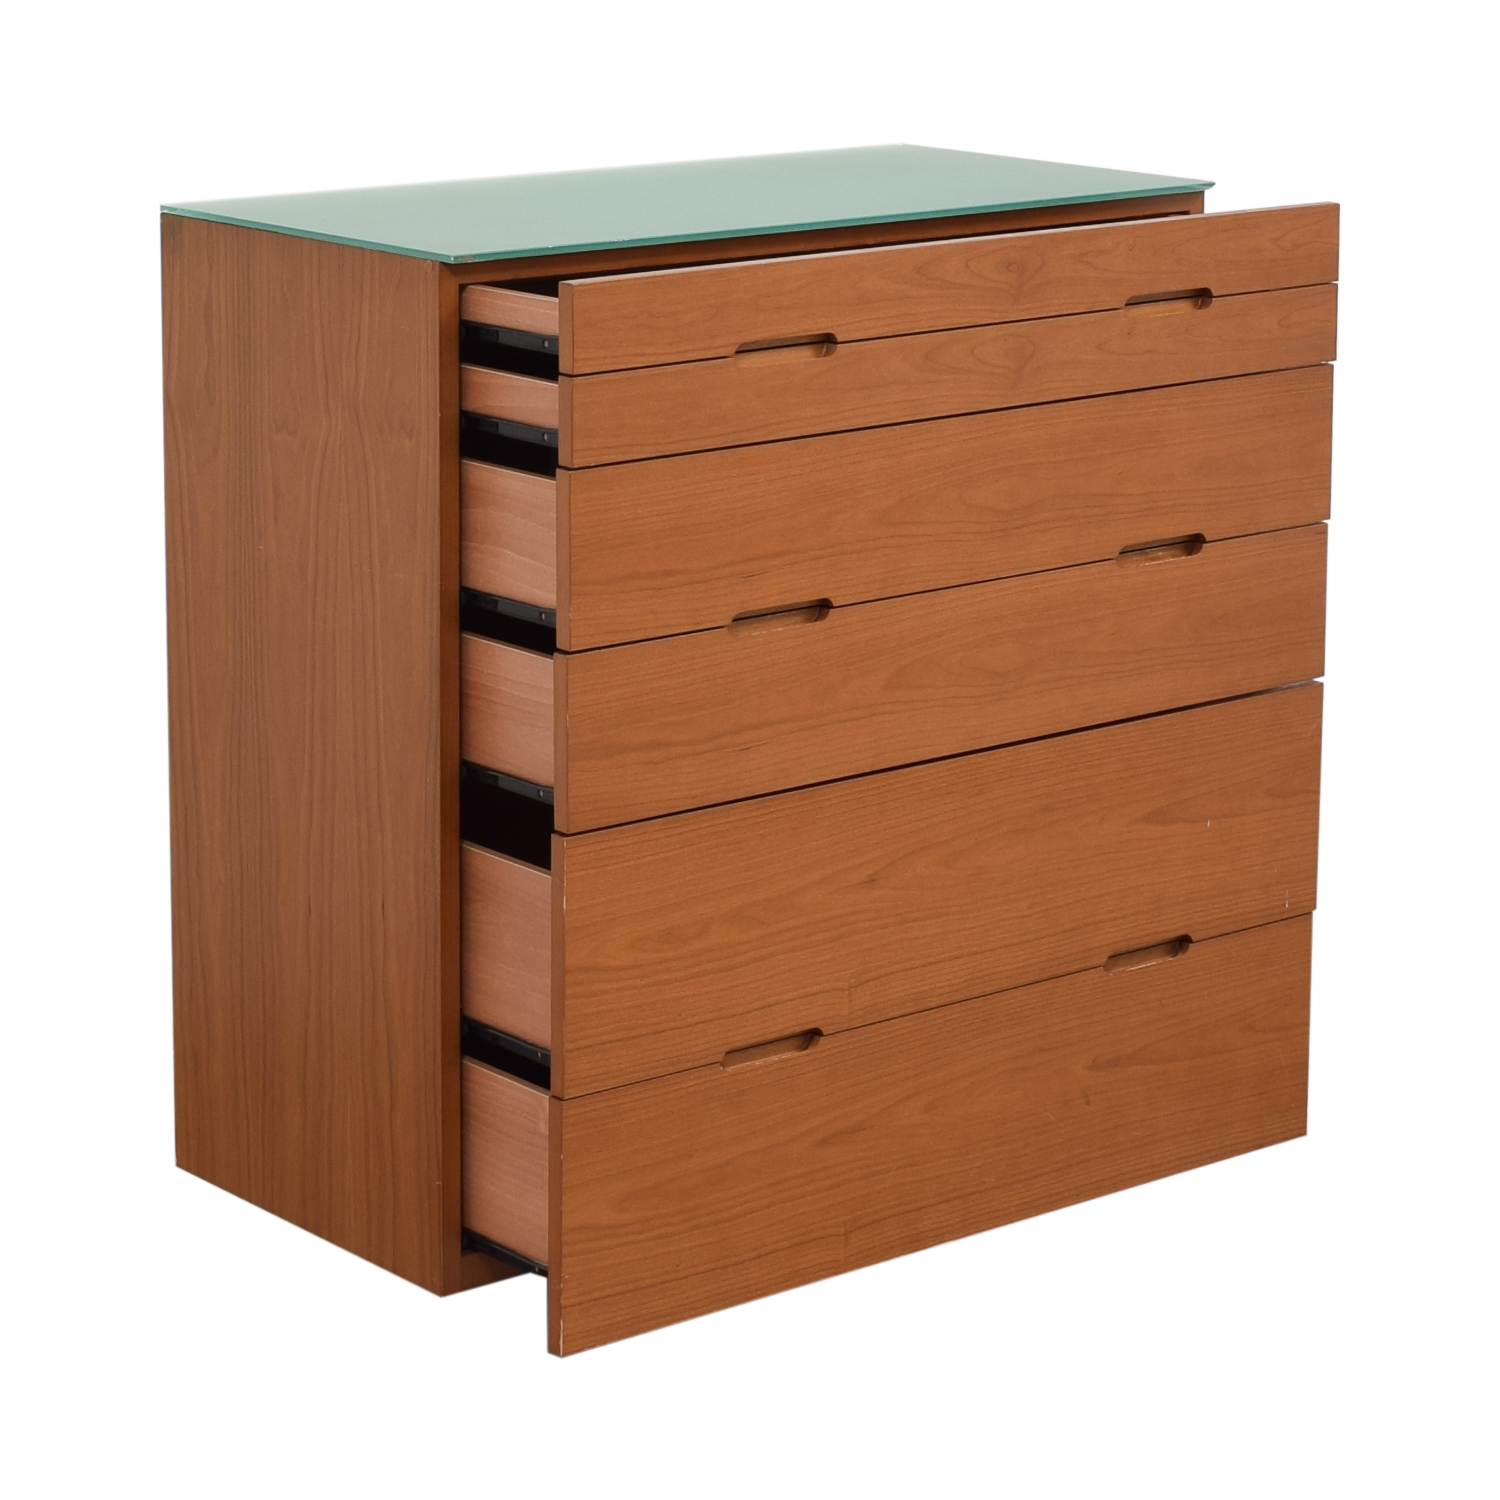 Mid Century Modern Chest of Drawers brown